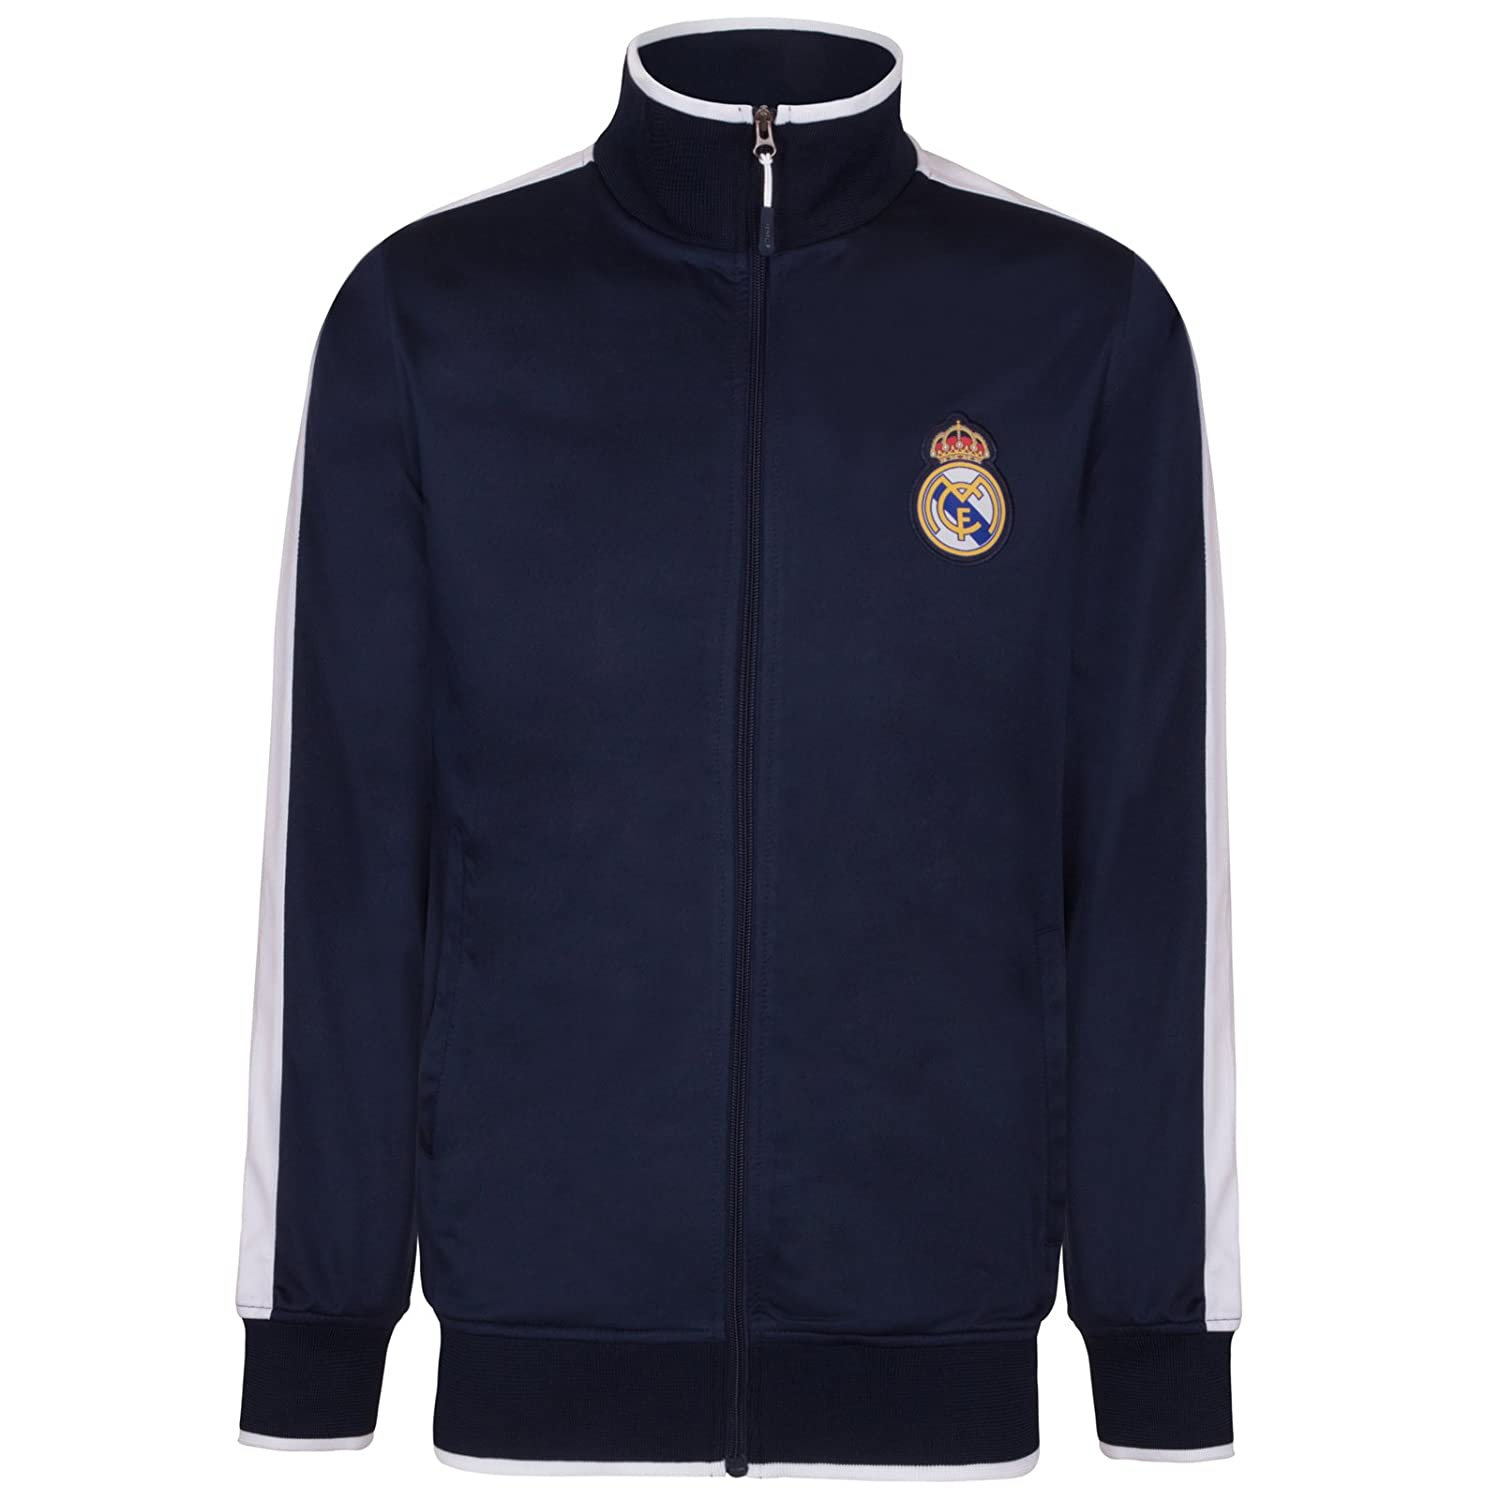 Real Madrid Official Football Gift Boys Retro Track Top Jacket Navy Blue